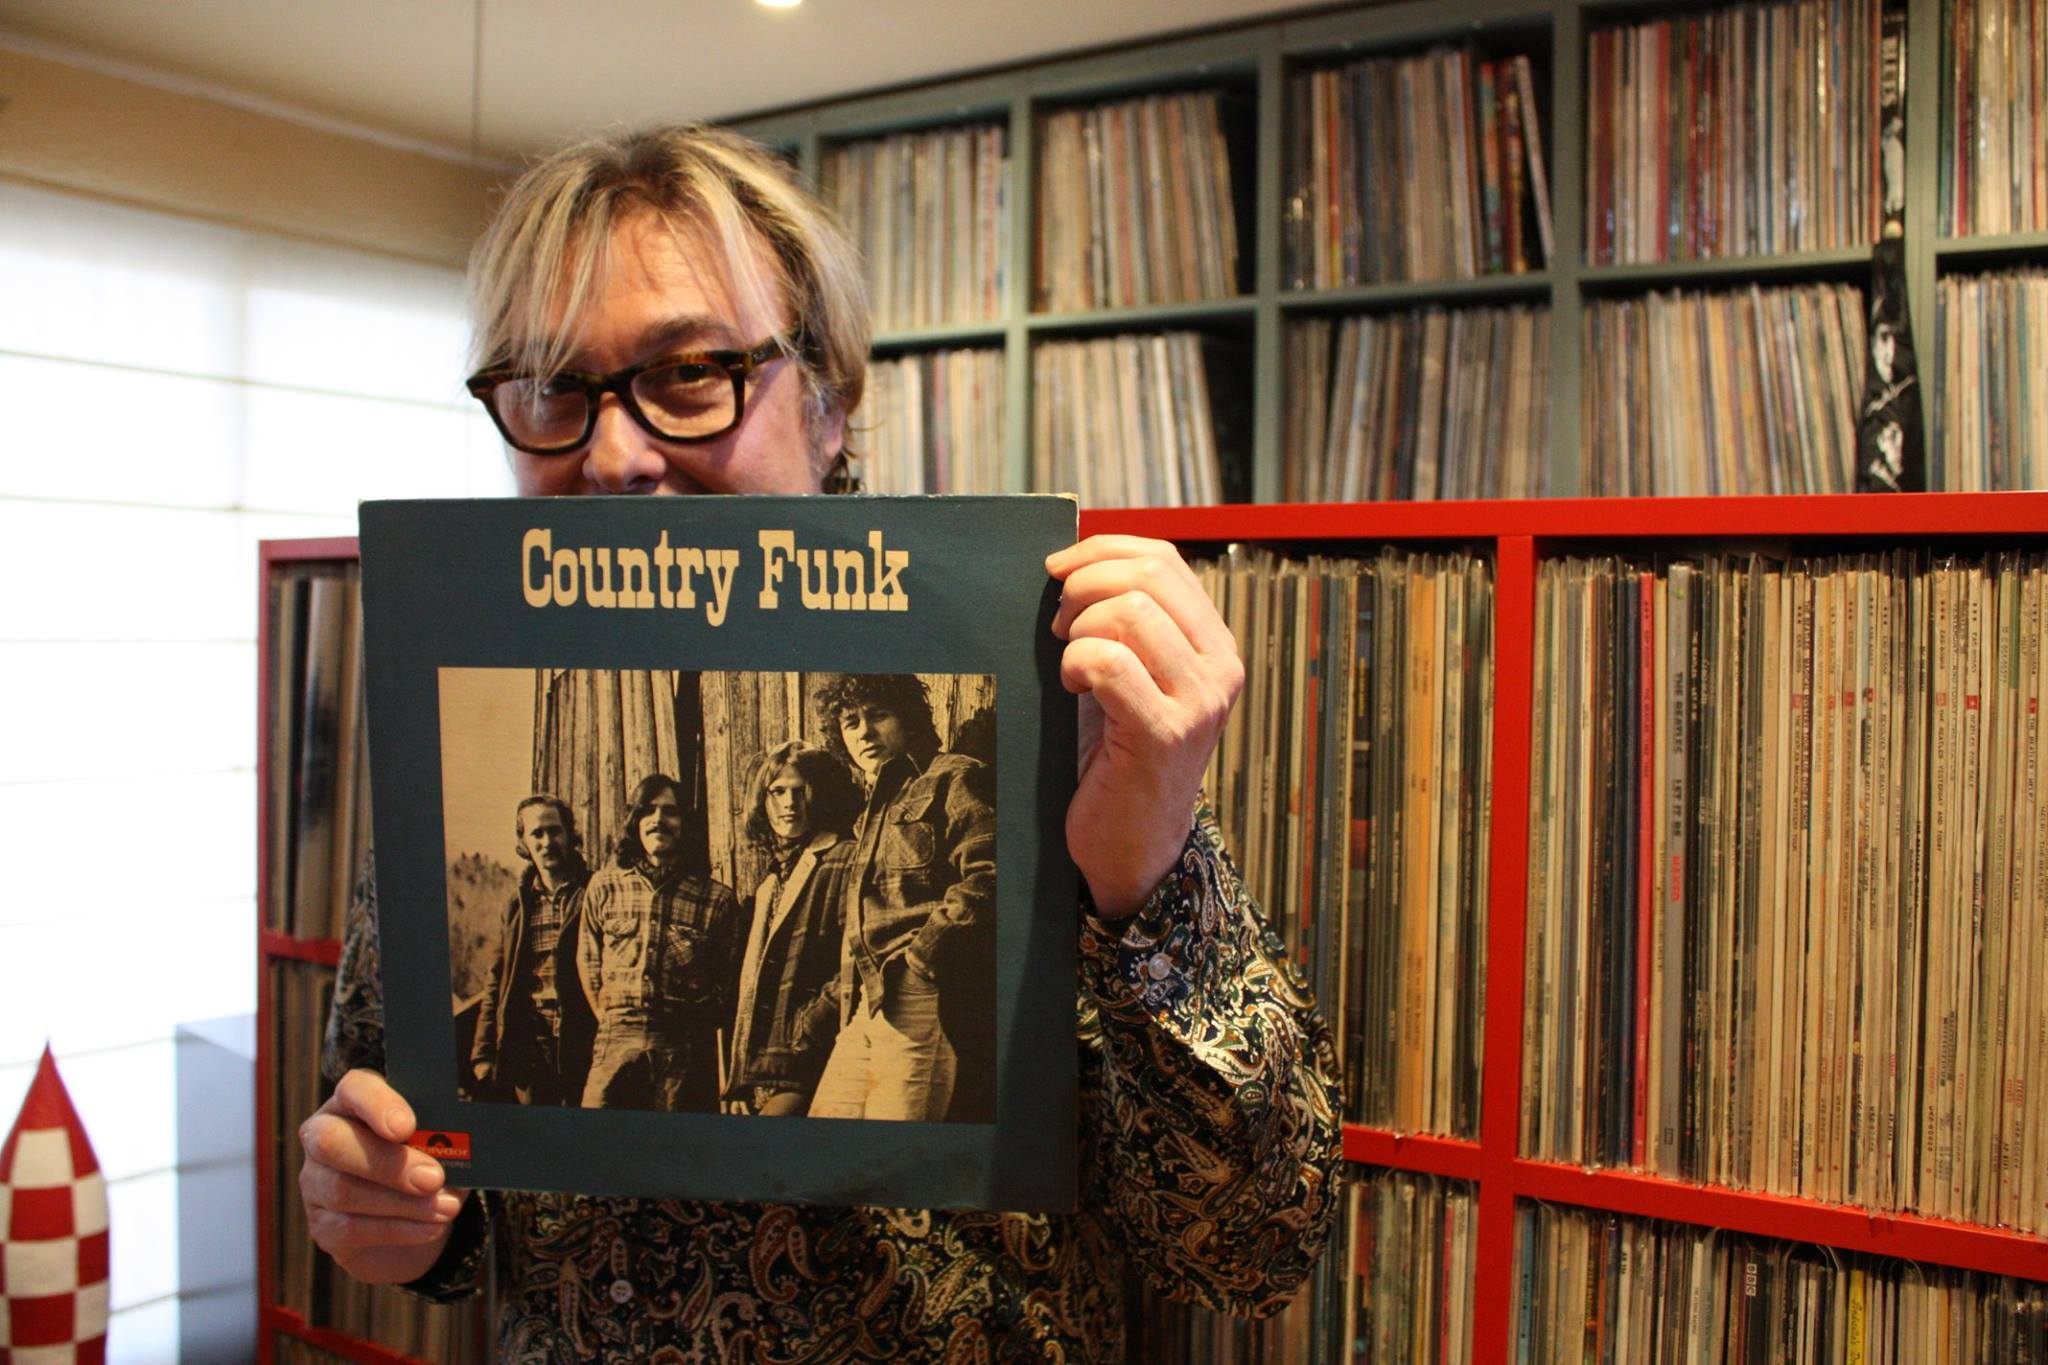 Country Funk – Country Funk (Polydor 1970)